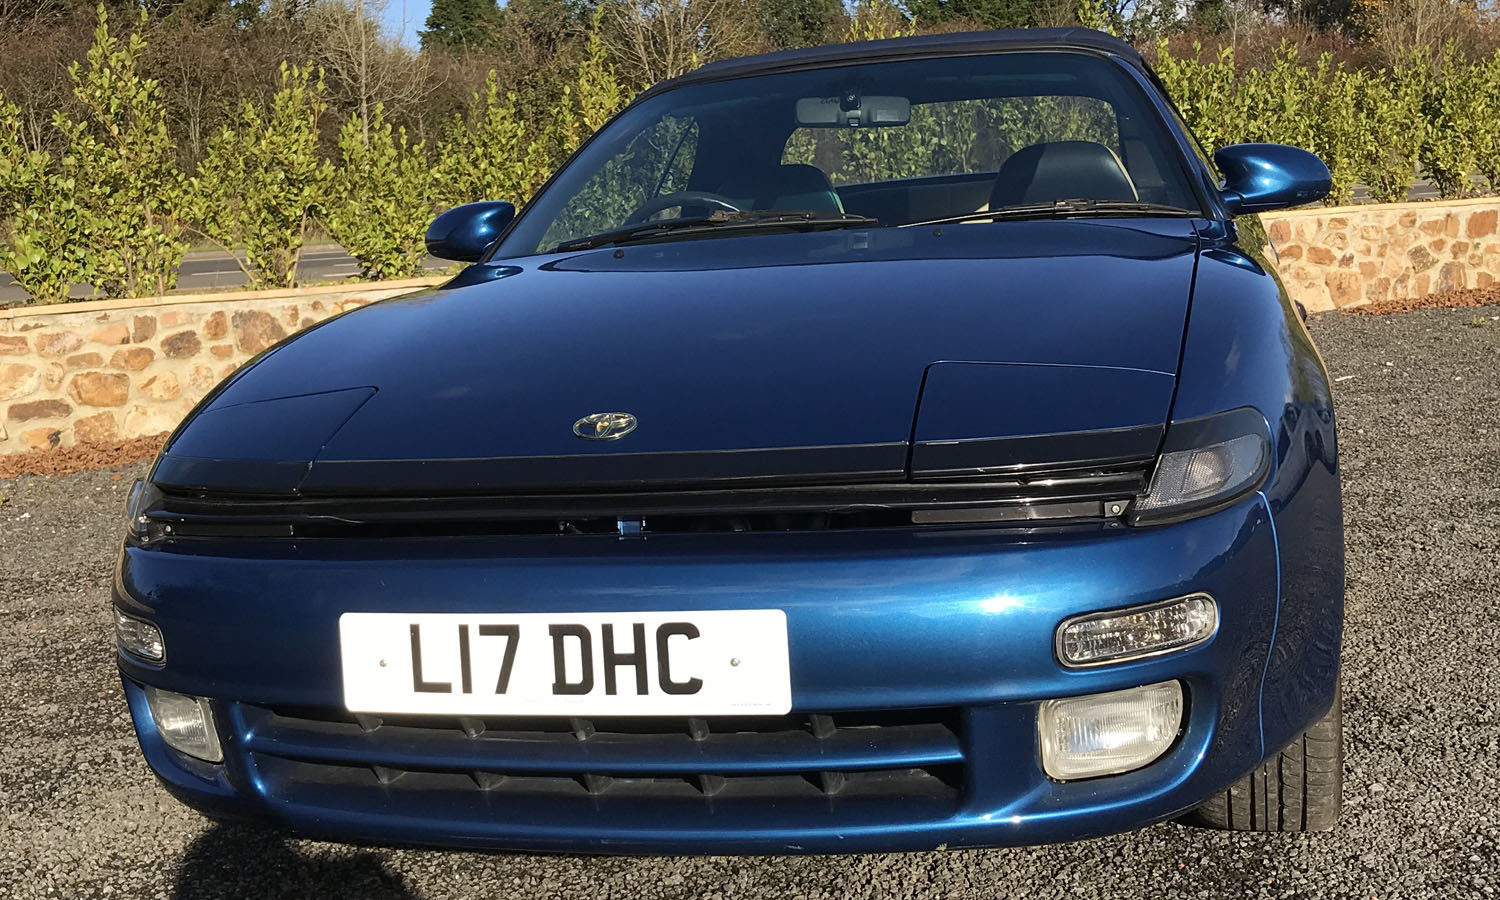 1993 Toyota Celica Gen 5 ST183 JDM Limited 300 Edition For Sale (picture 2 of 6)